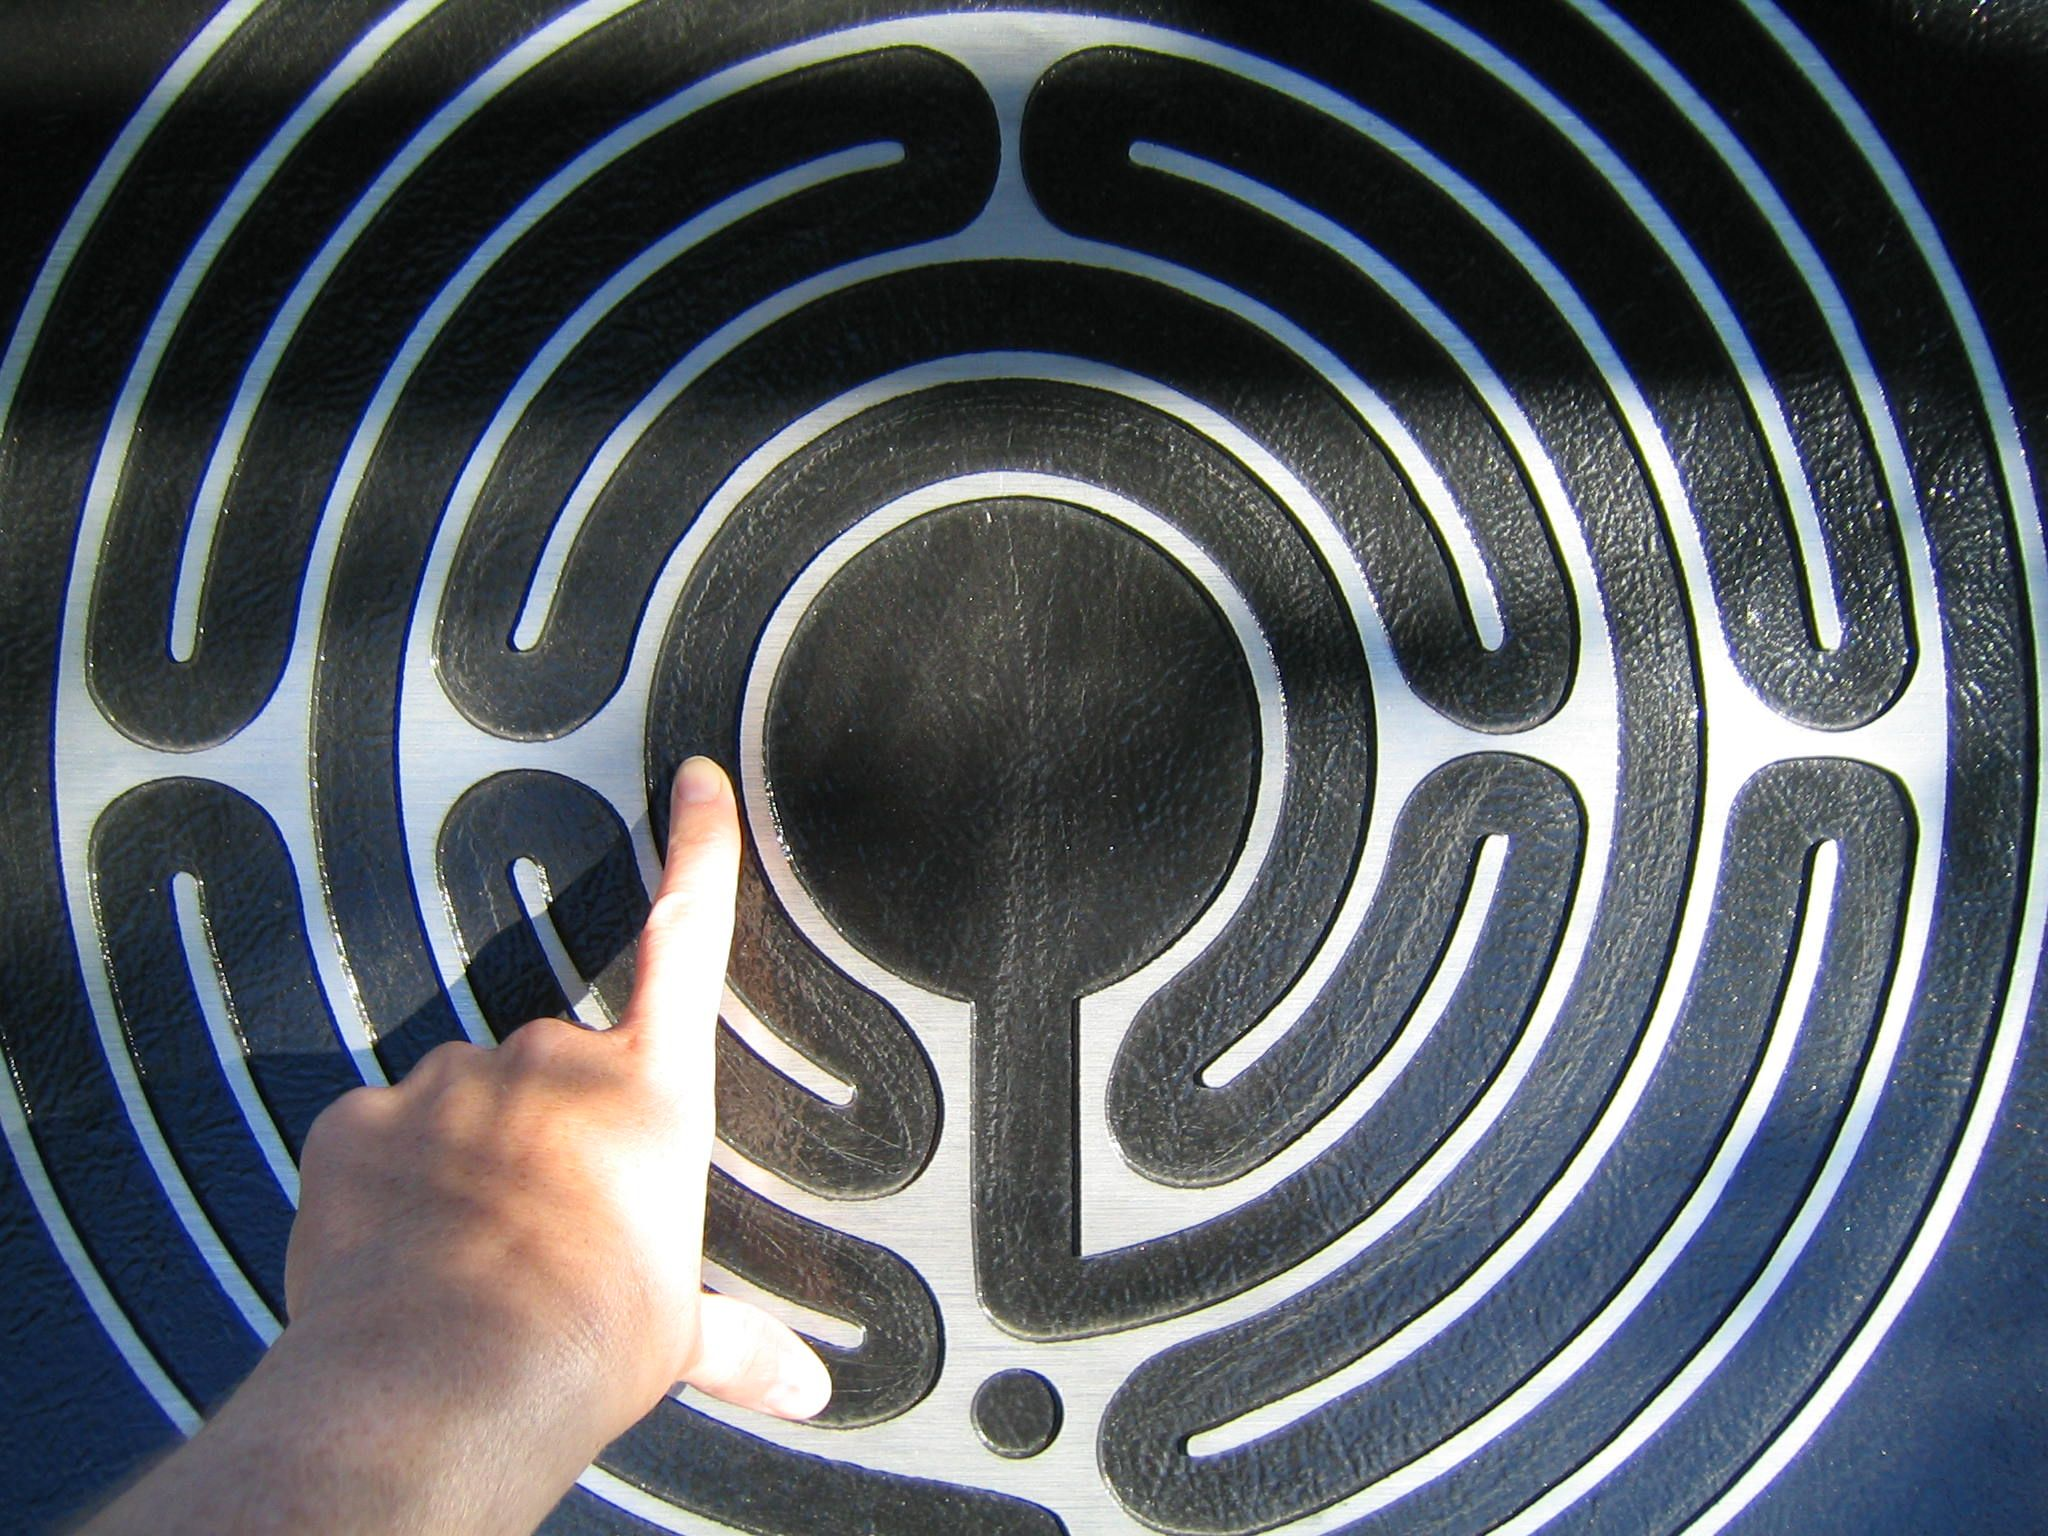 This is an image of Fan Finger Labyrinth Printable